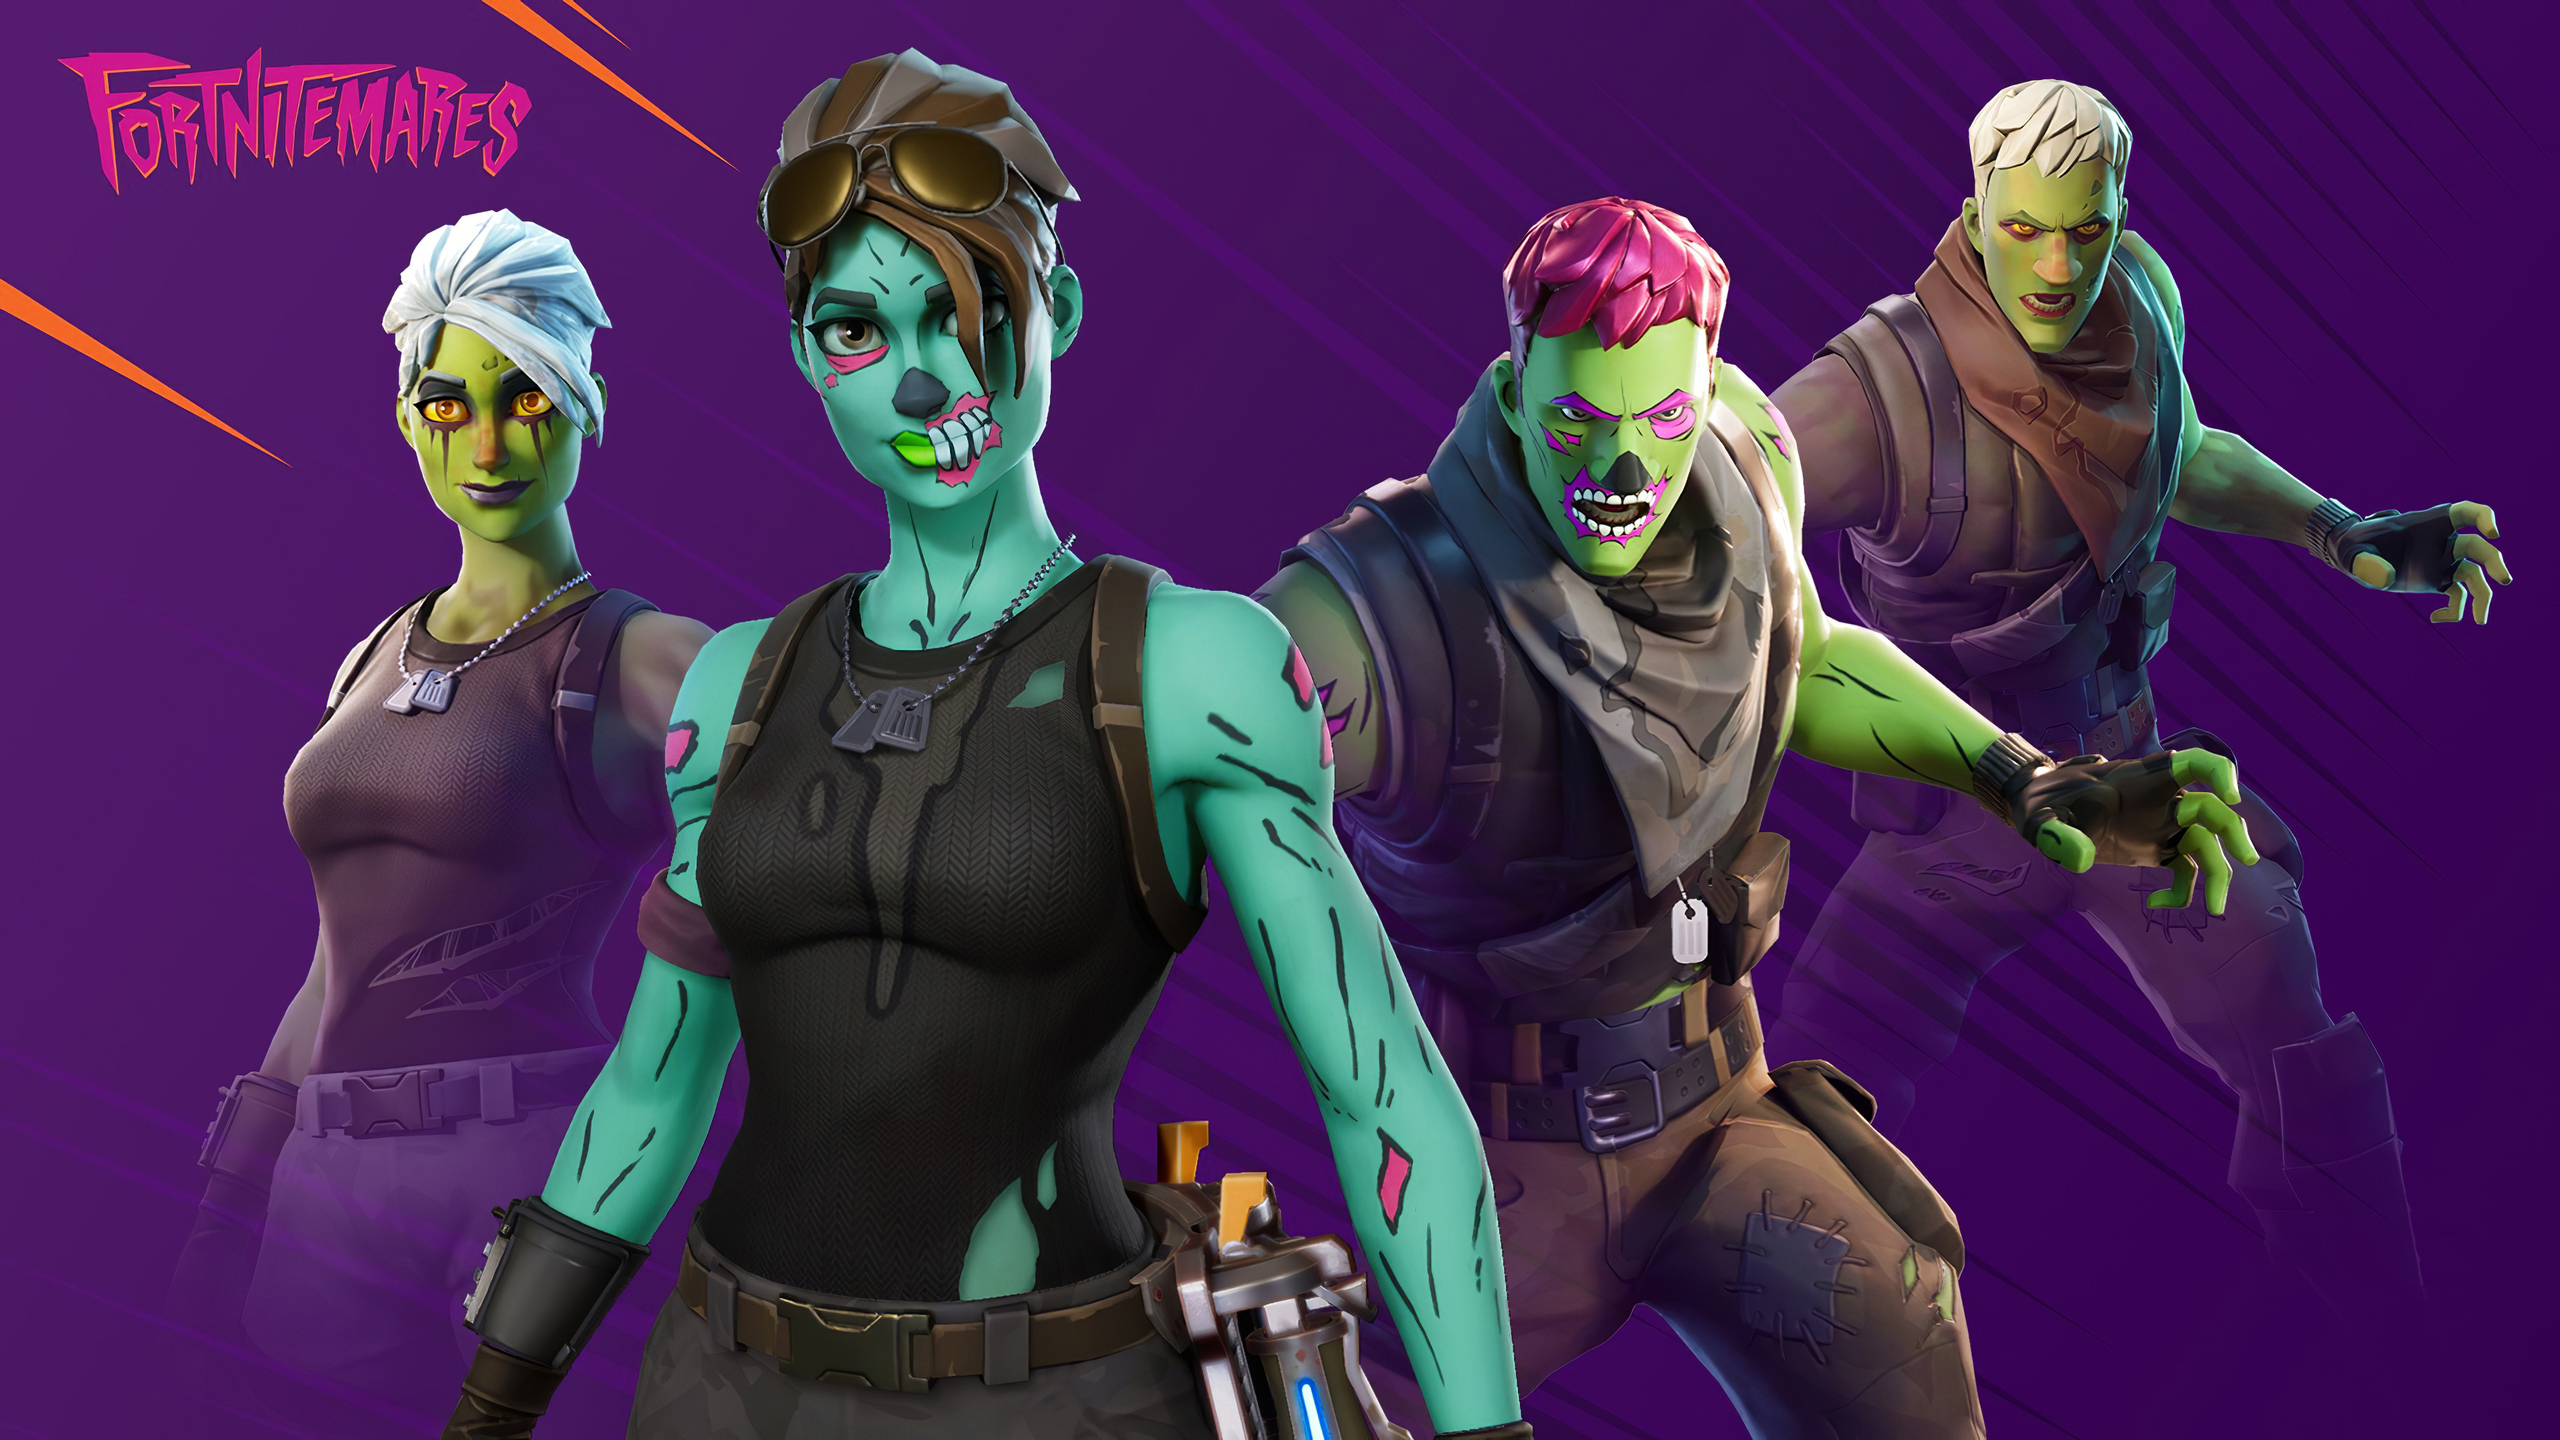 2560x1440 Brainiac And Ghoul Trooper Fortnite 4k 1440p Resolution Hd 4k Wallpapers Images Backgrounds Photos And Pictures